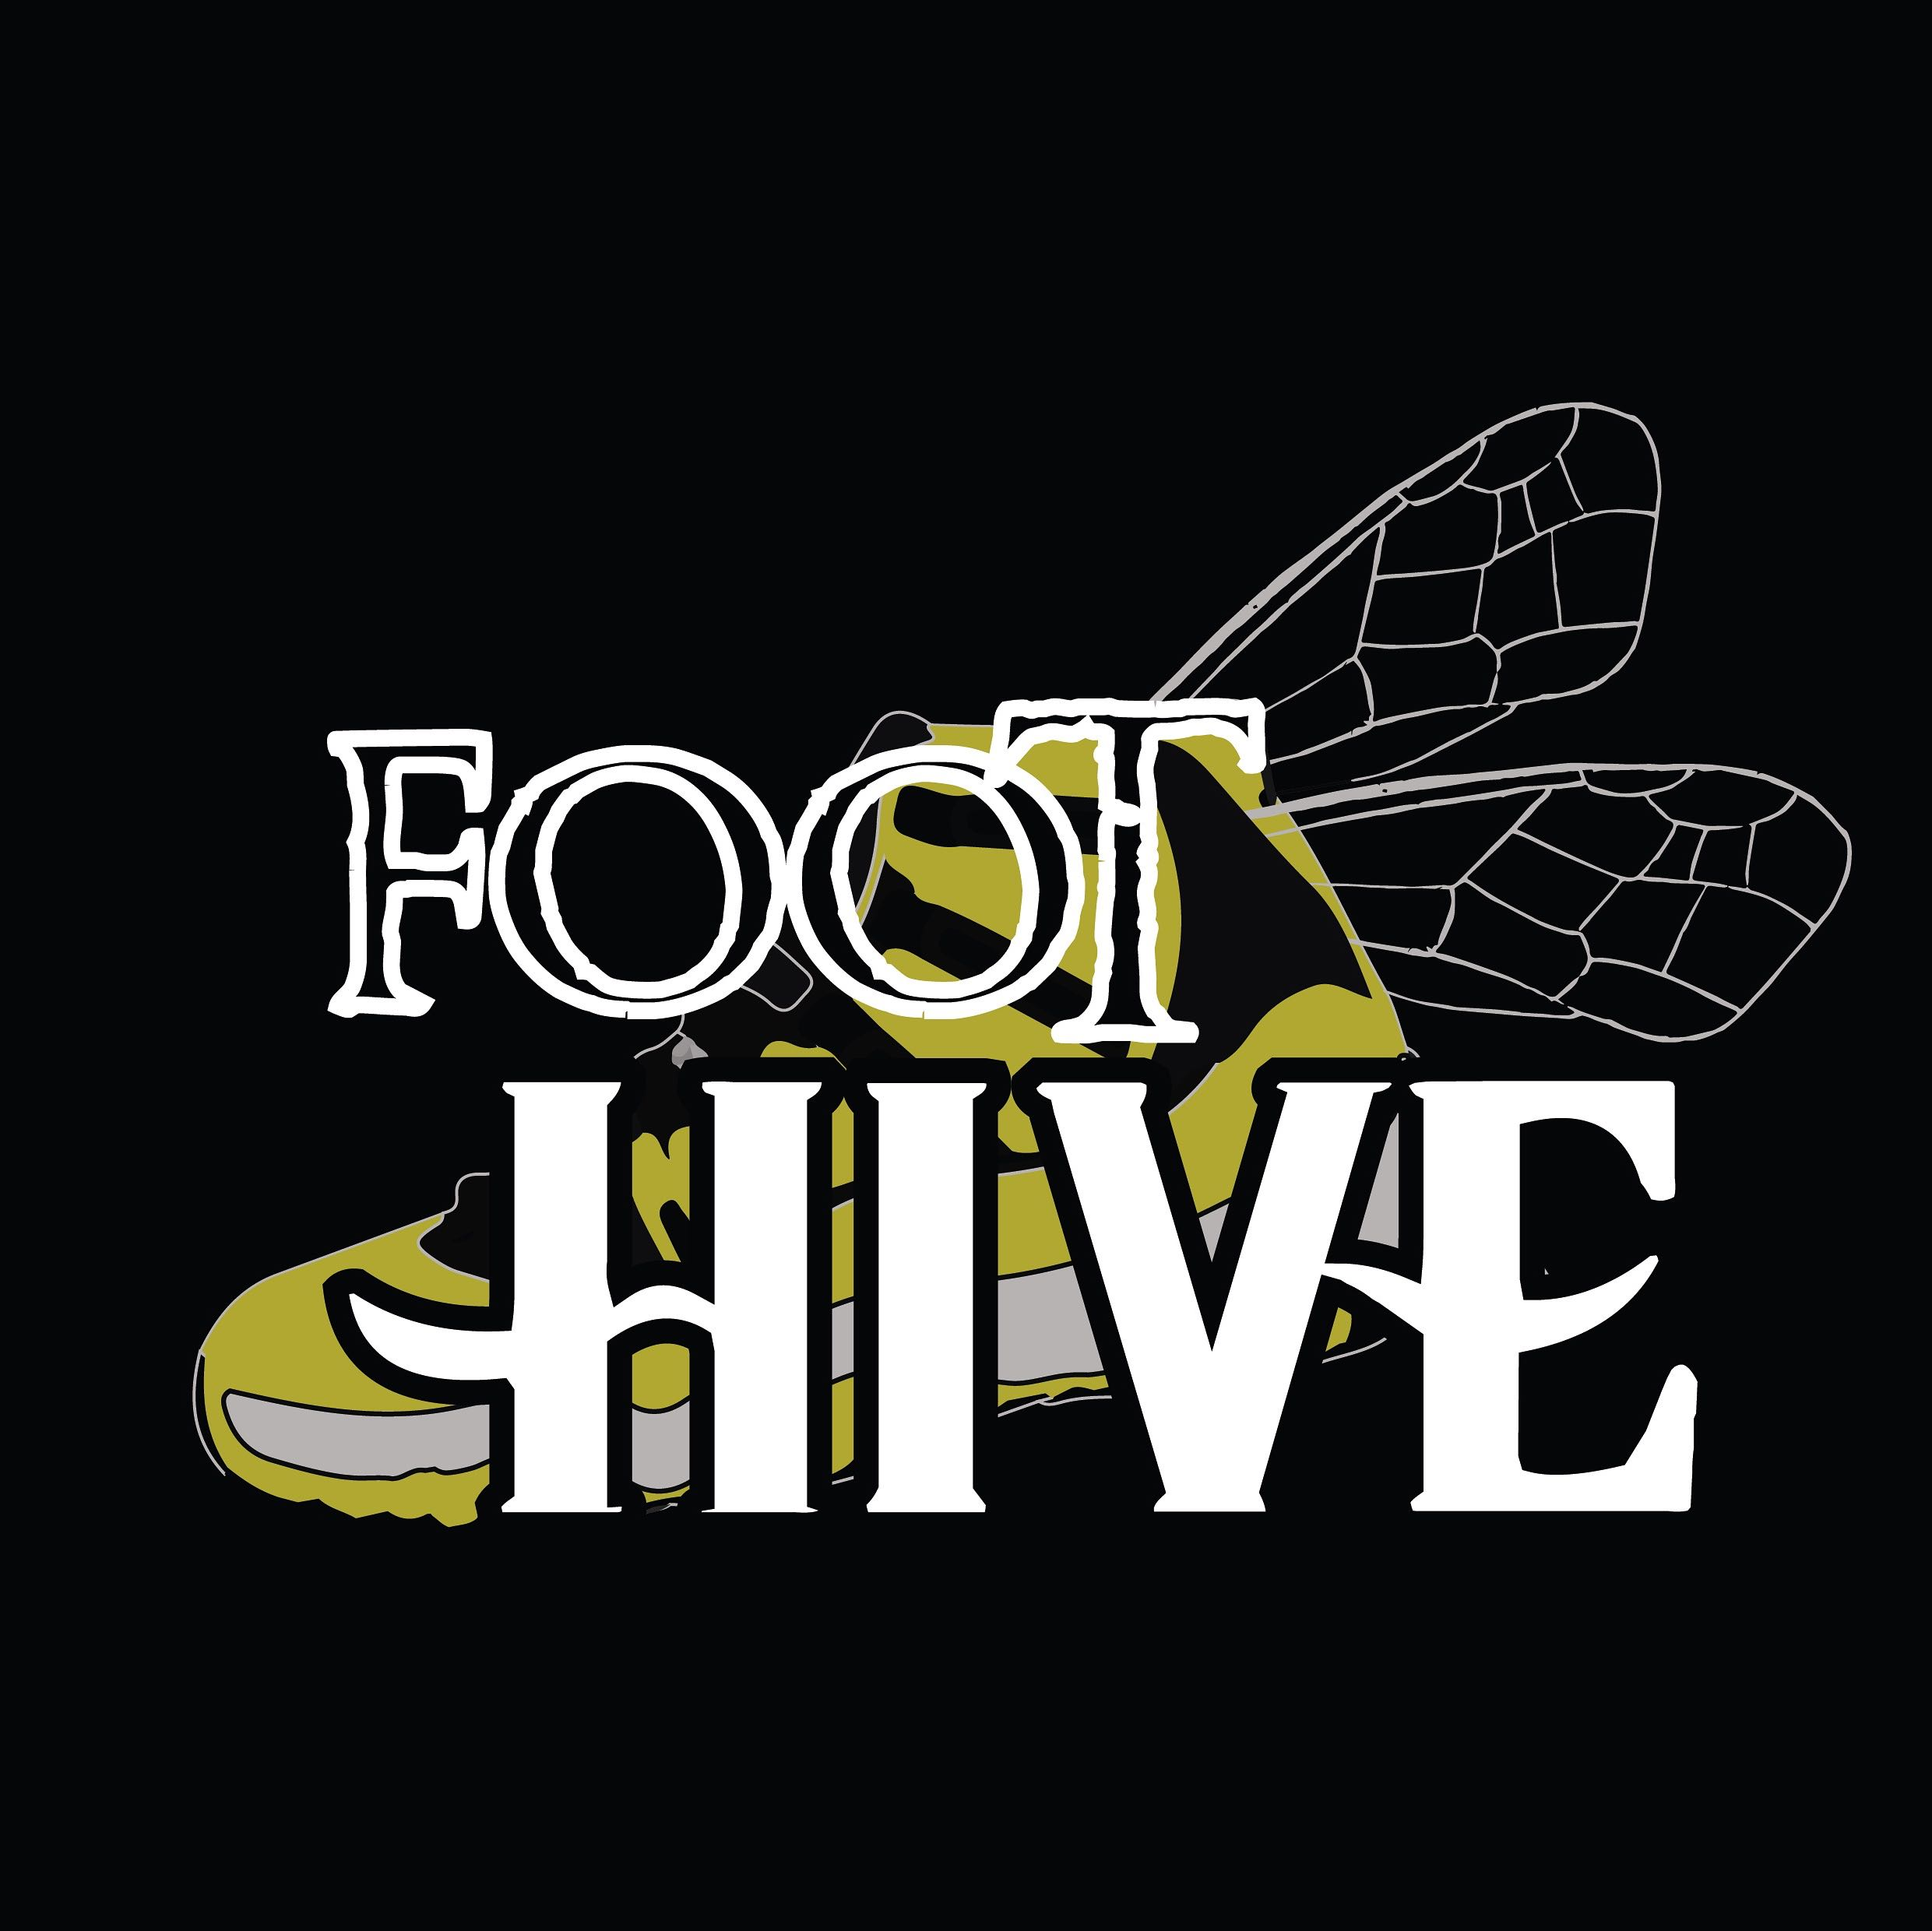 foothive